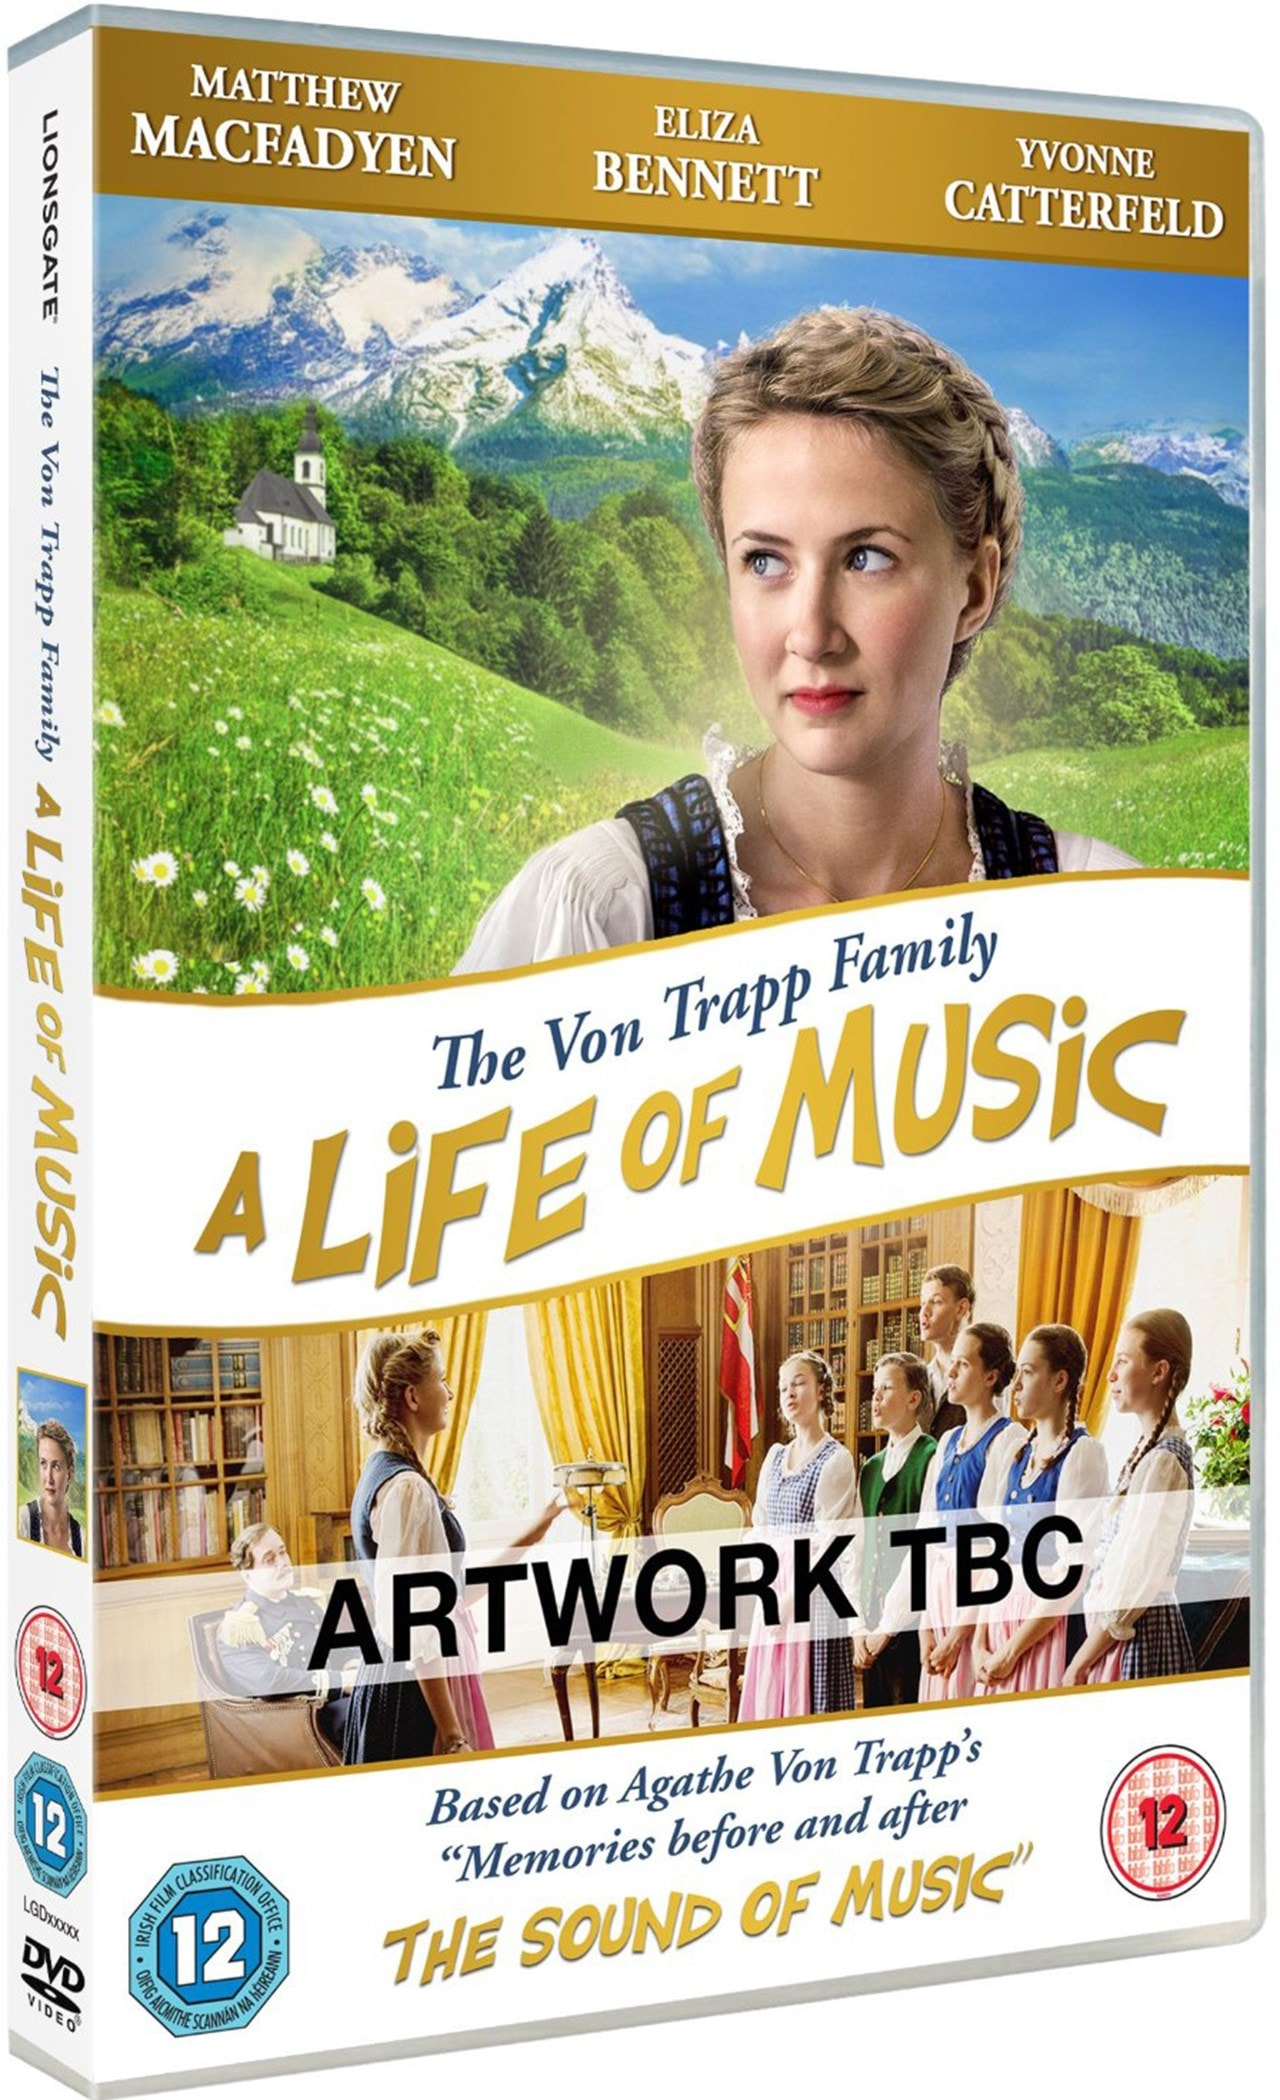 The Von Trapp Family: A Life of Music - 2